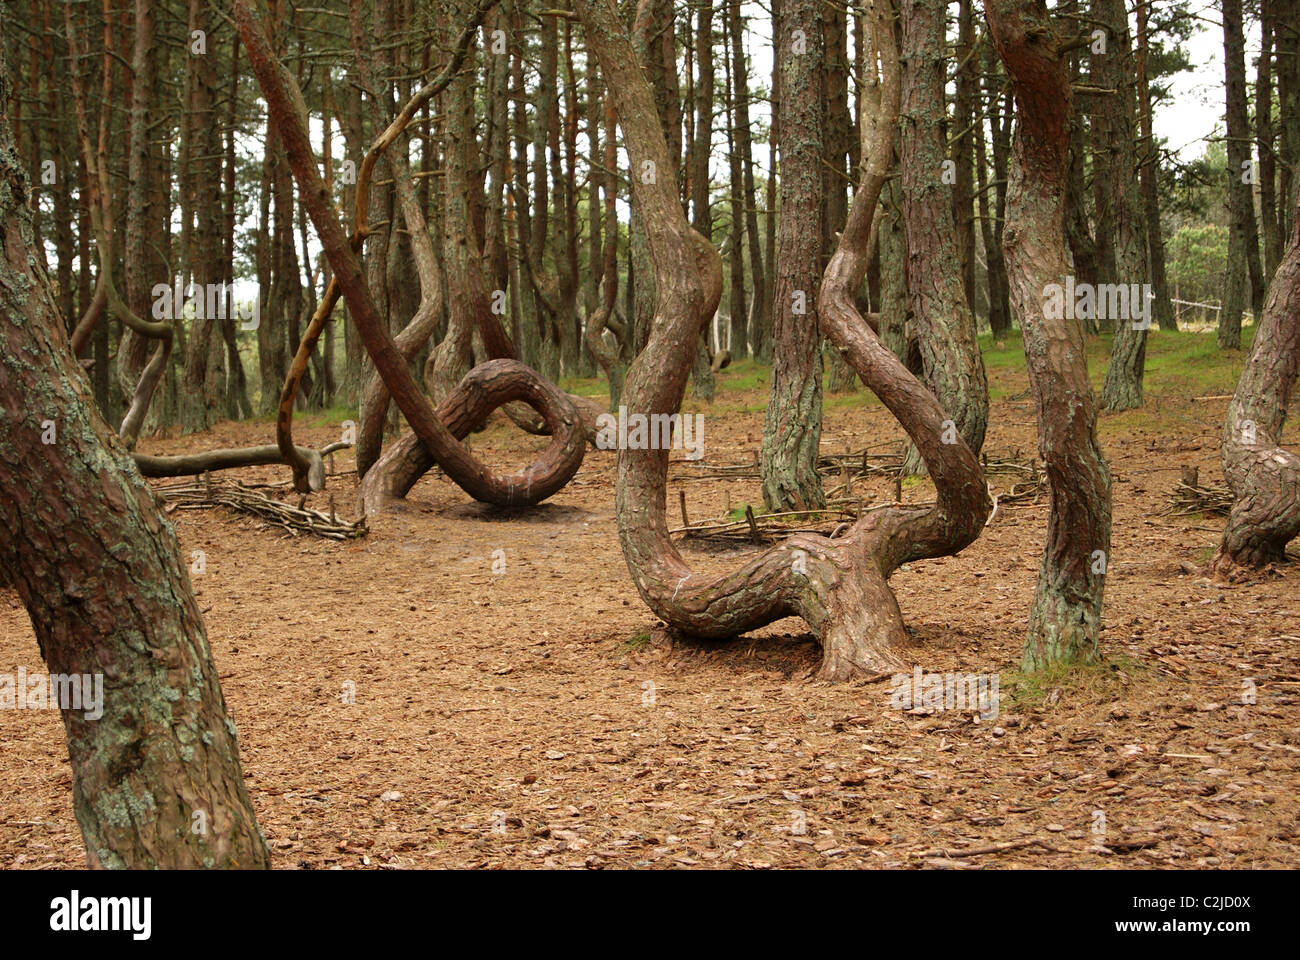 Dancing forest - Stock Image